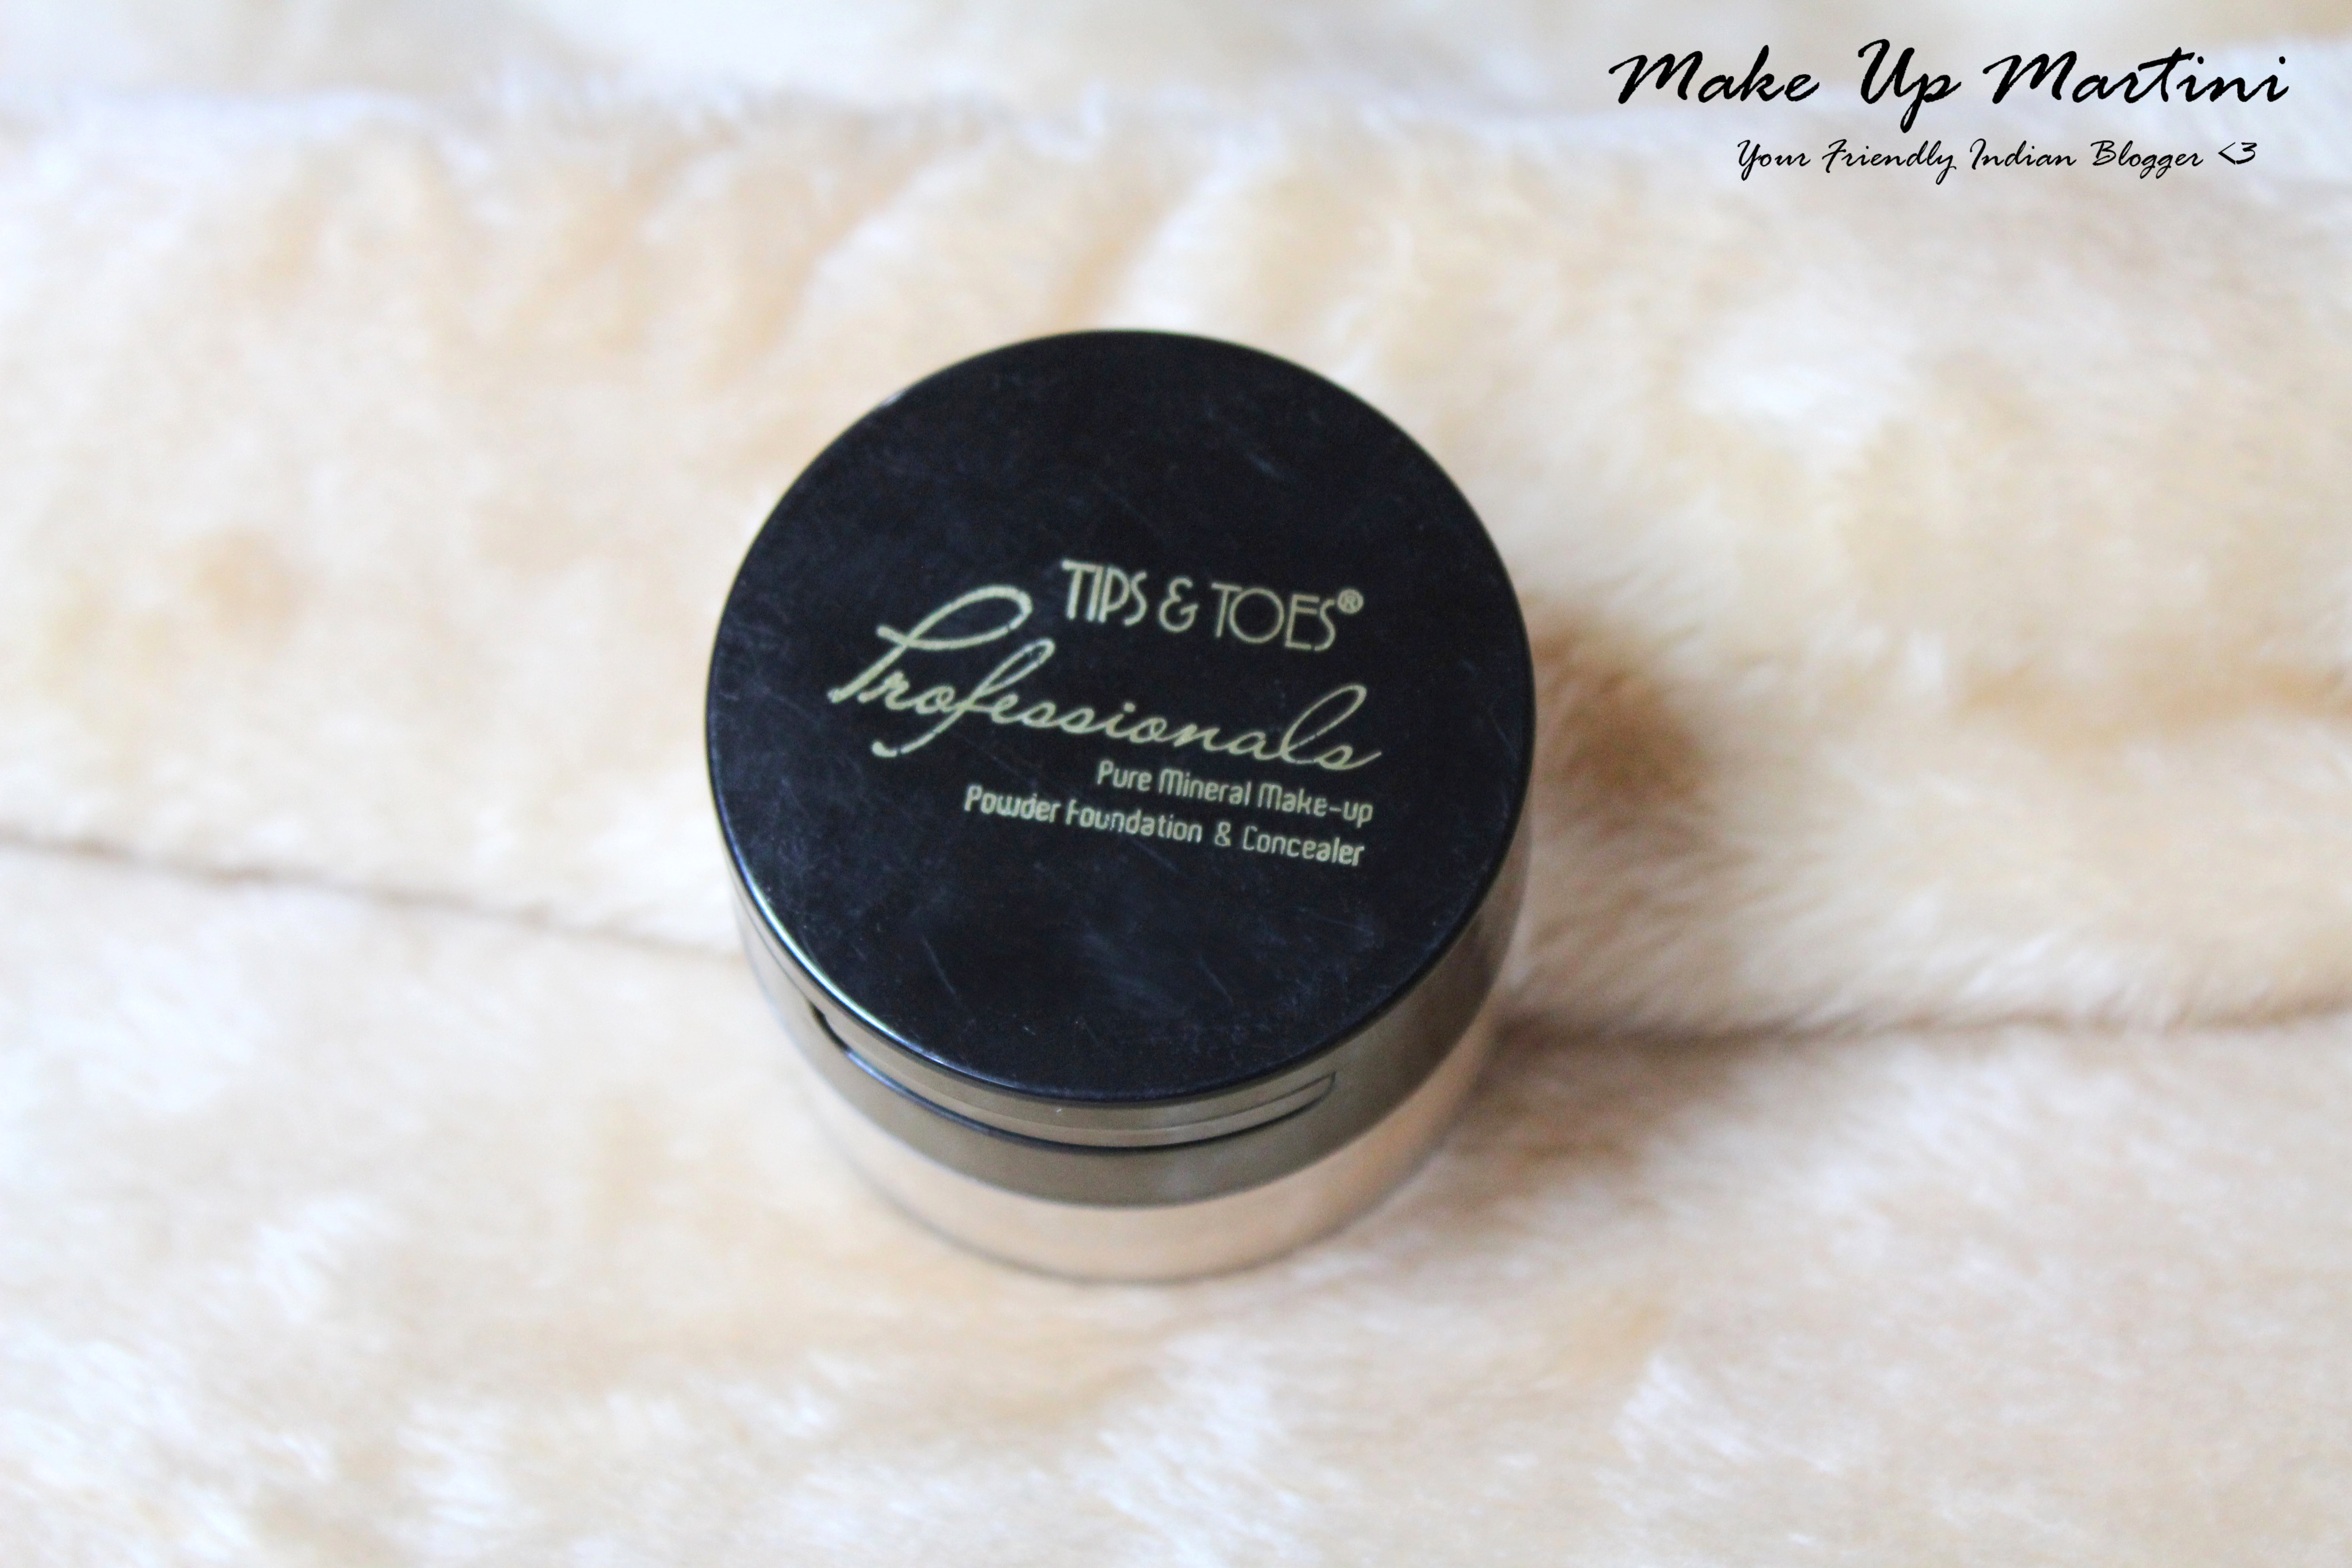 Tips & Toes Pure Mineral Make-up Powder Foundation & Concealer